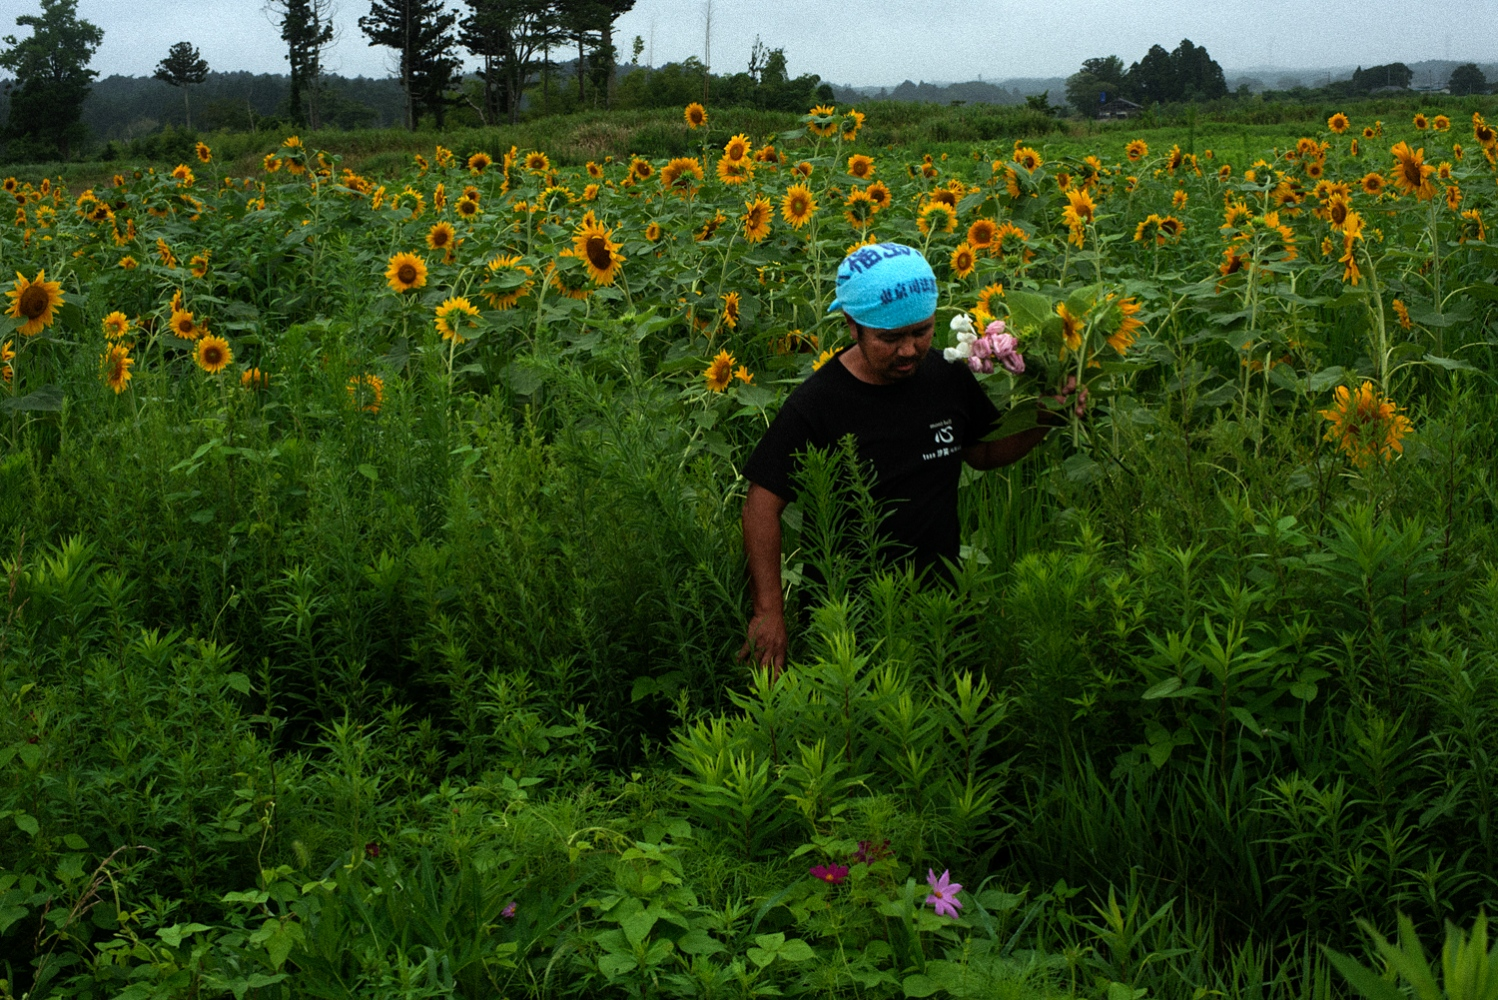 Norio Kimura(52) is picking up flowers for his family graves near by. He has been tended a garden to commemorate for his missing daughter inside the exlcusion zone in Fukushima.